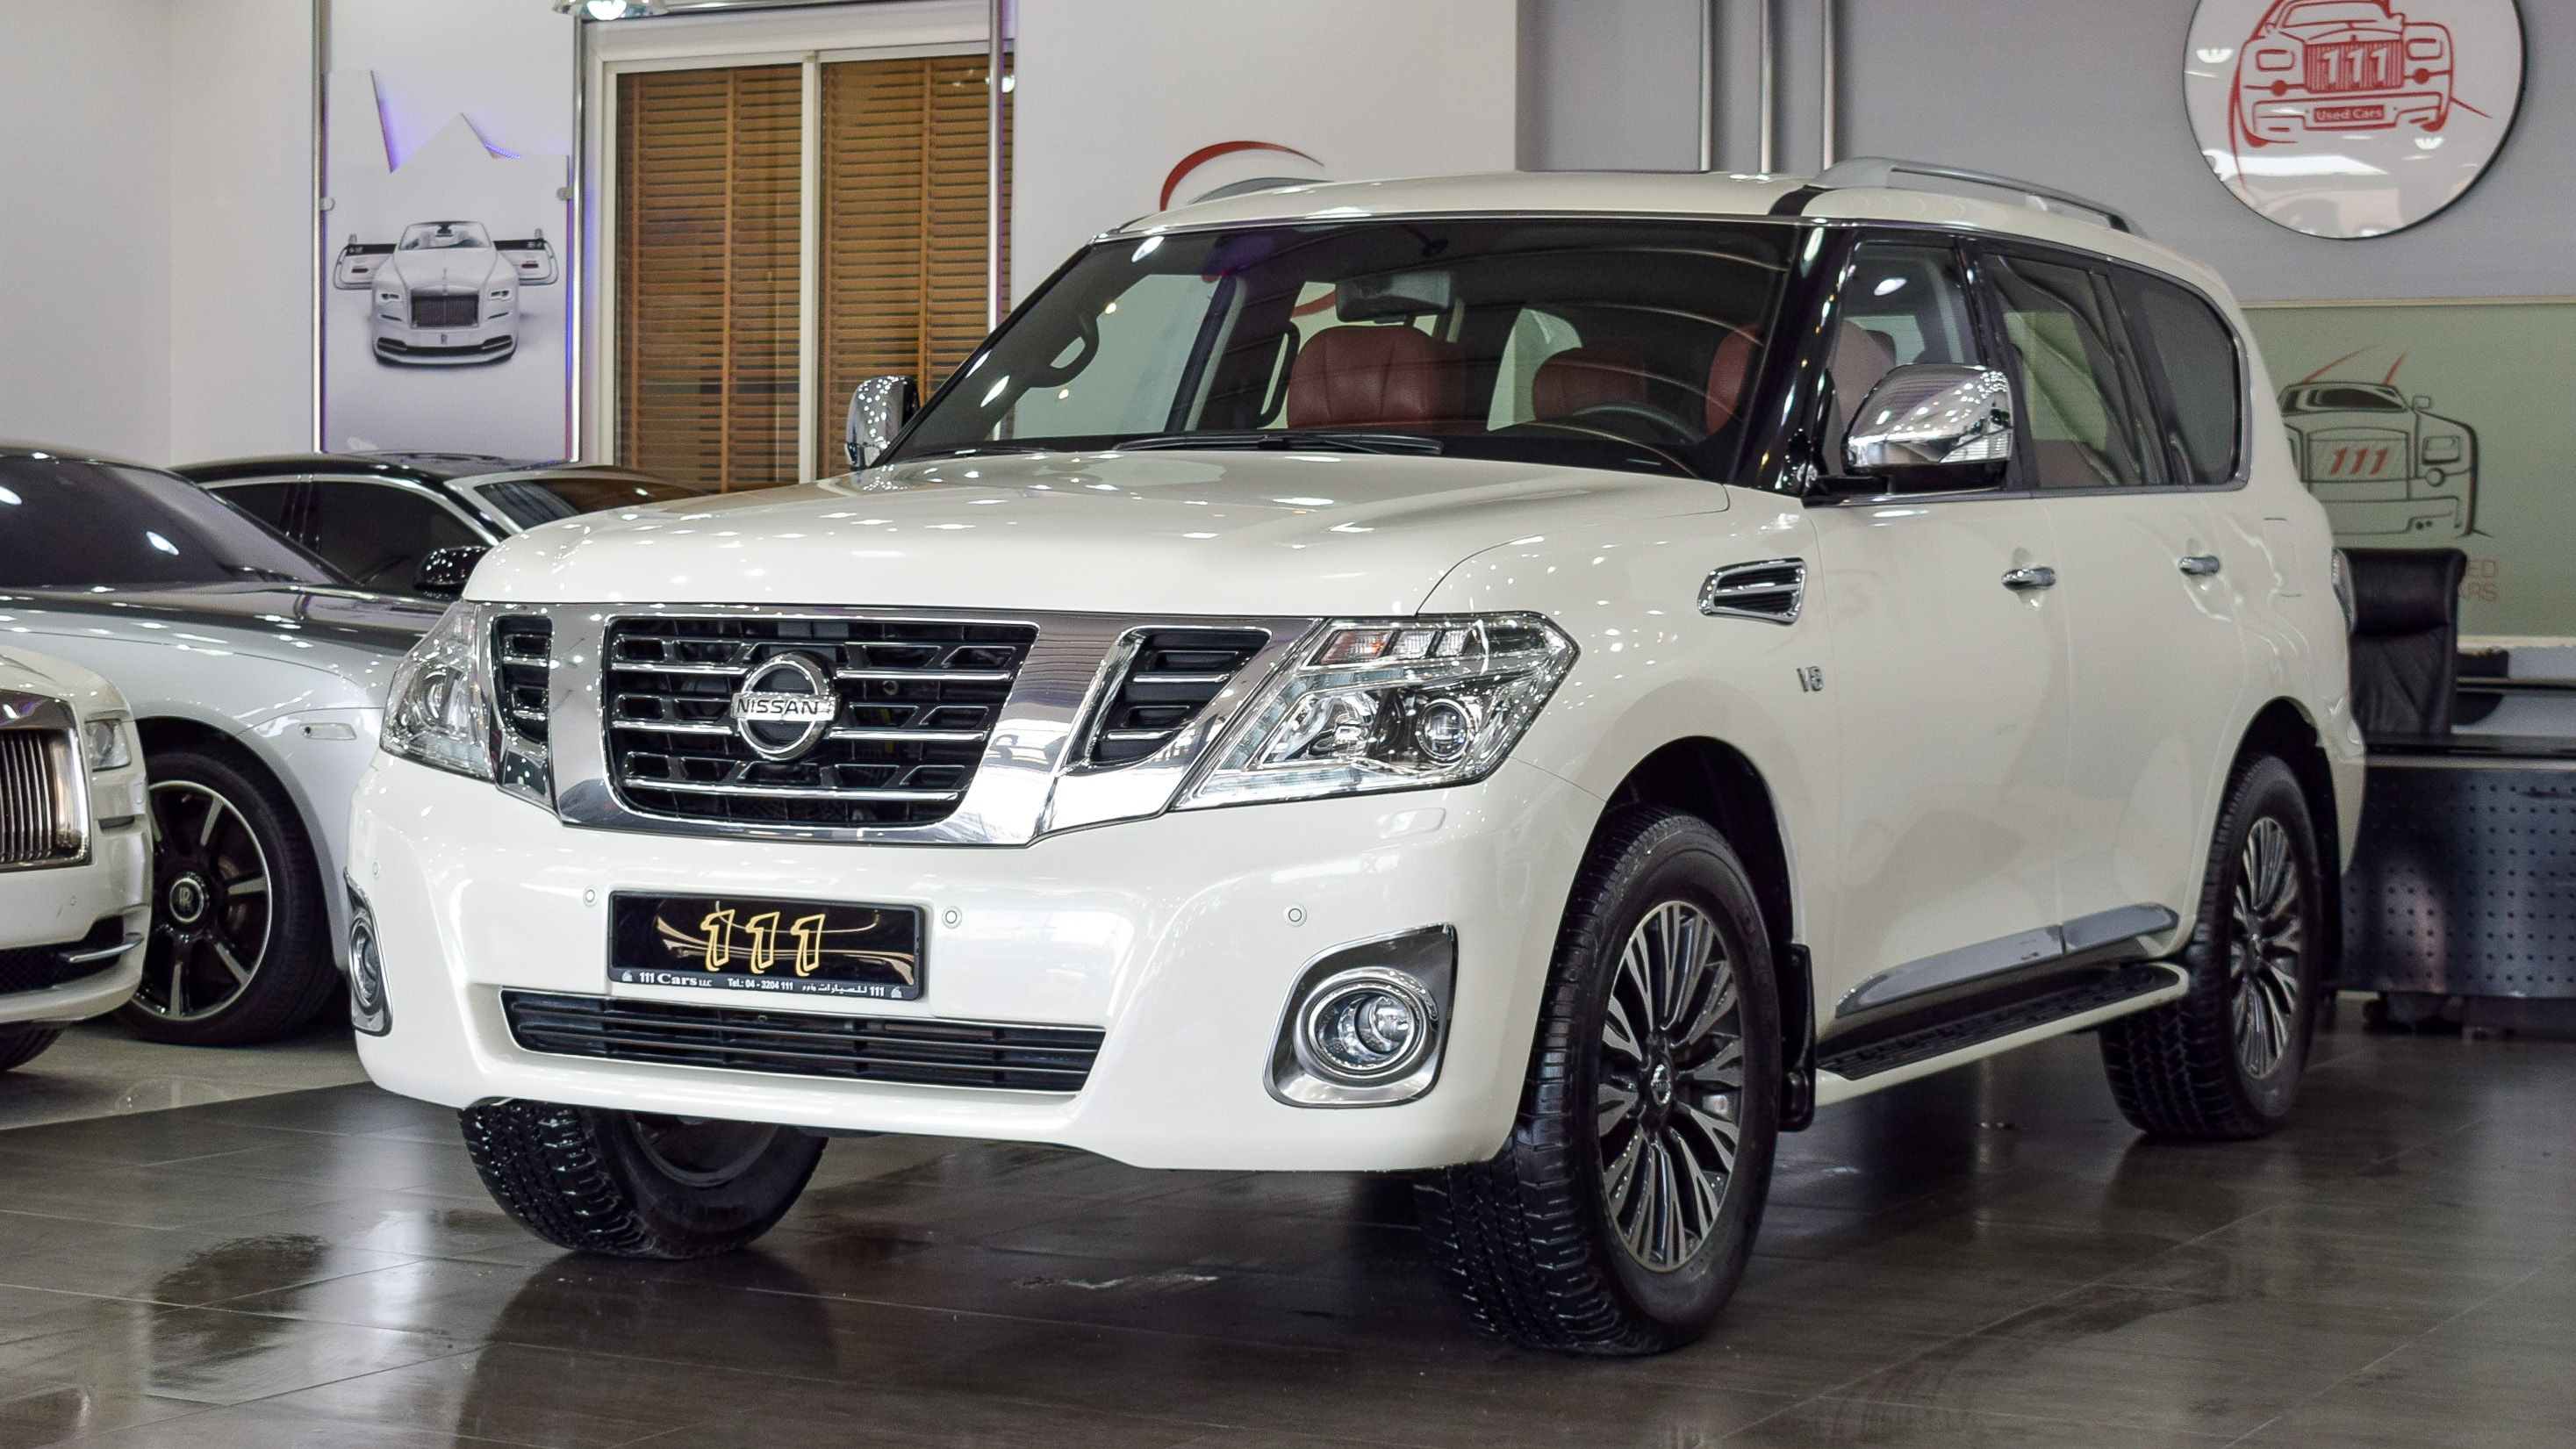 2019 Nissan Patrol Titanium Le Vvel Dig With Platinum Badge Gcc Specifications In 2020 Nissan Patrol Nissan Badge